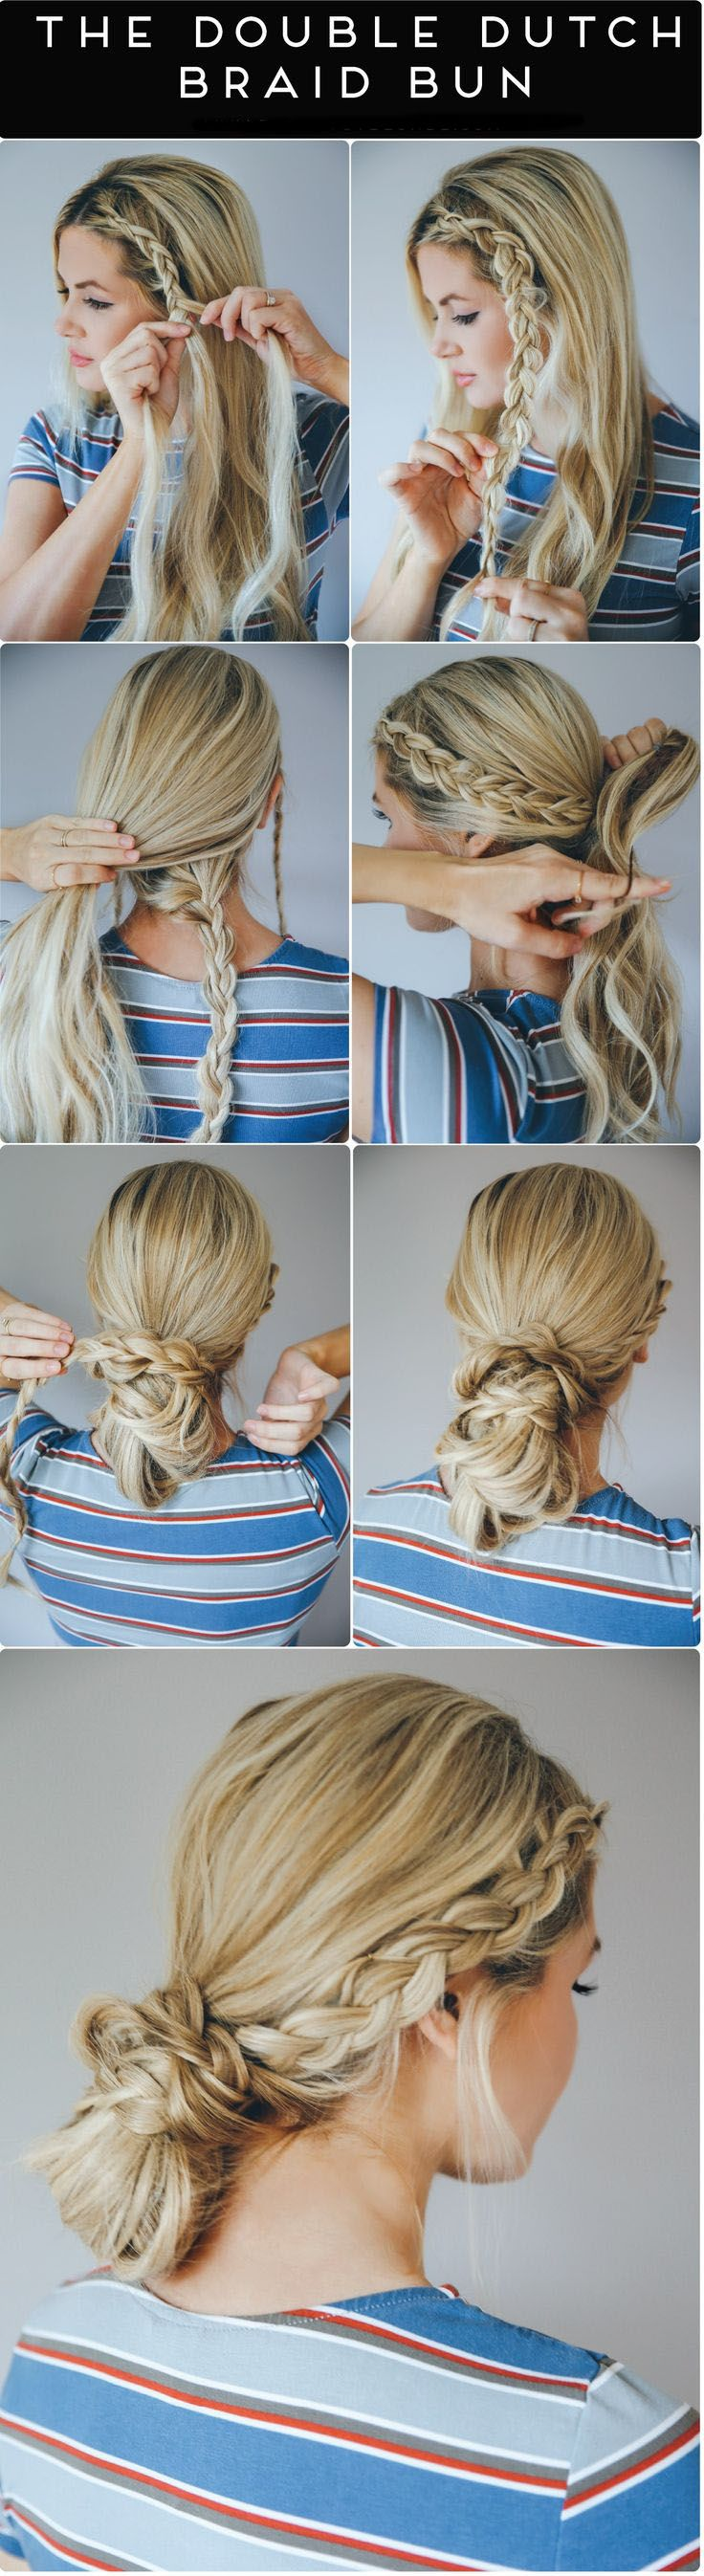 Diy quick u easy hairstyles you can do in less than minutes